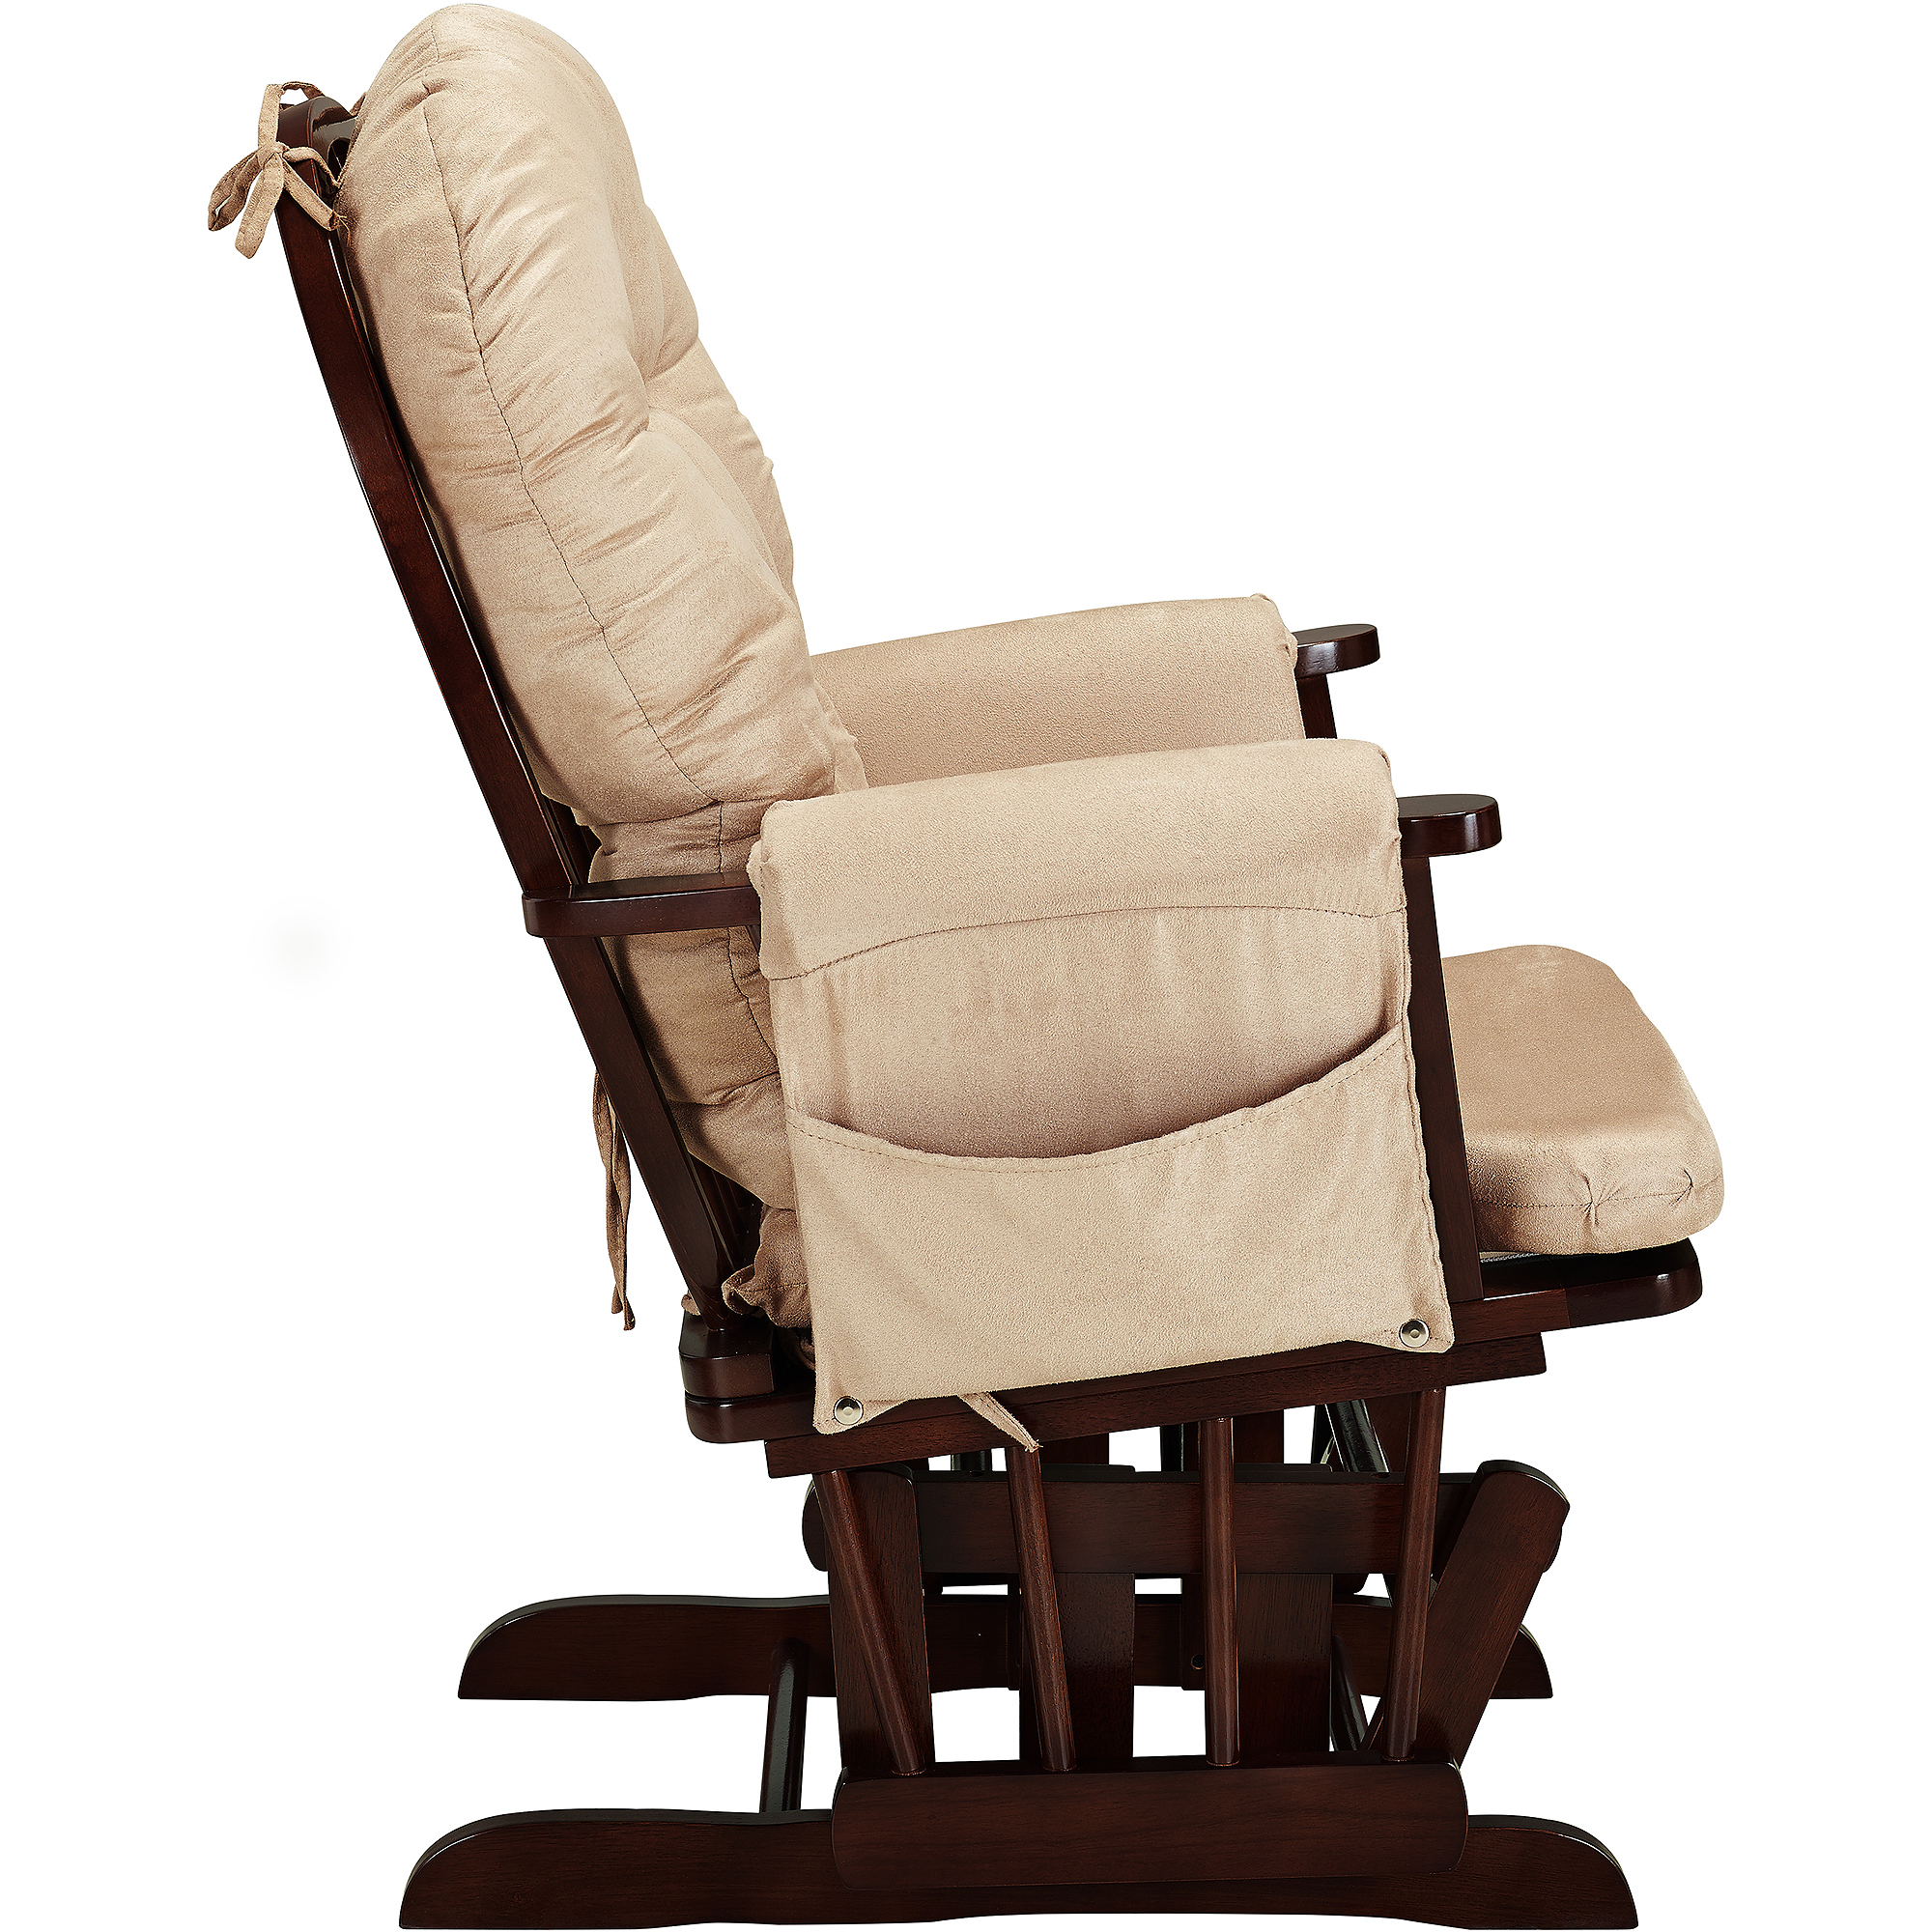 cushions for glider chairs gray recliner chair covers baby relax harbour rocker and ottoman cherry with beige walmart com